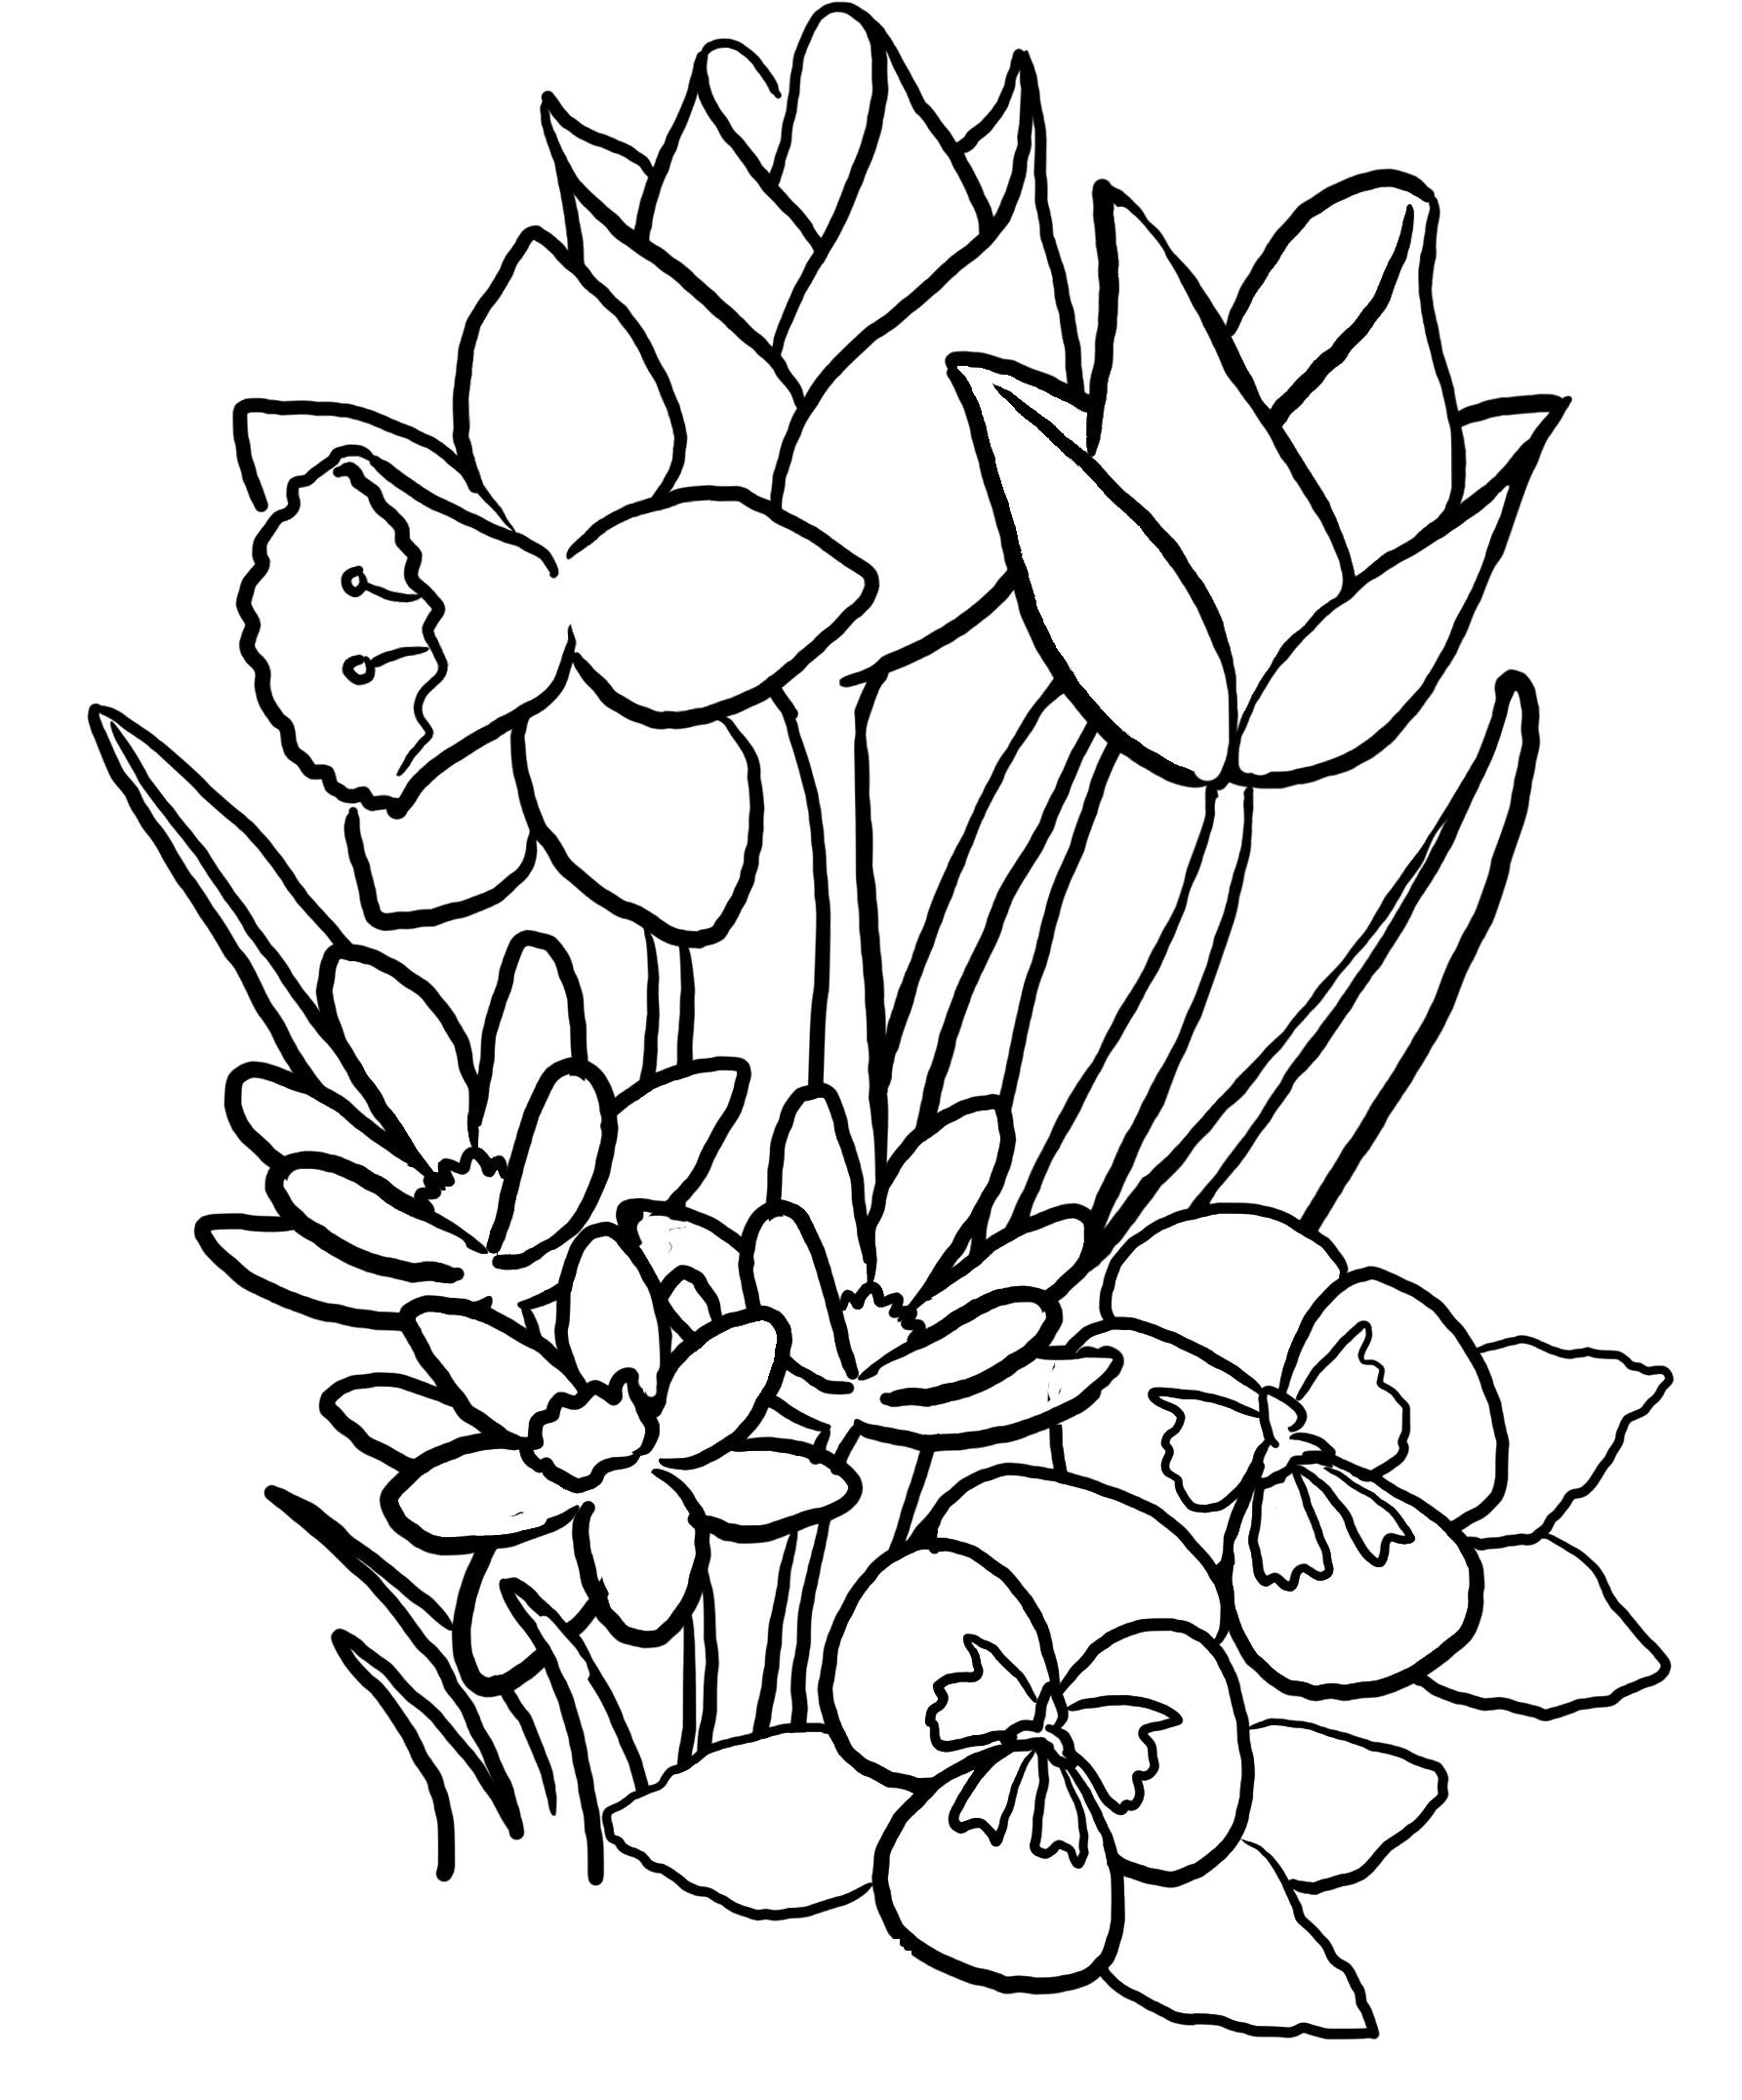 Colouring in pictures of flowers - Spring Coloring Sheet Free Download